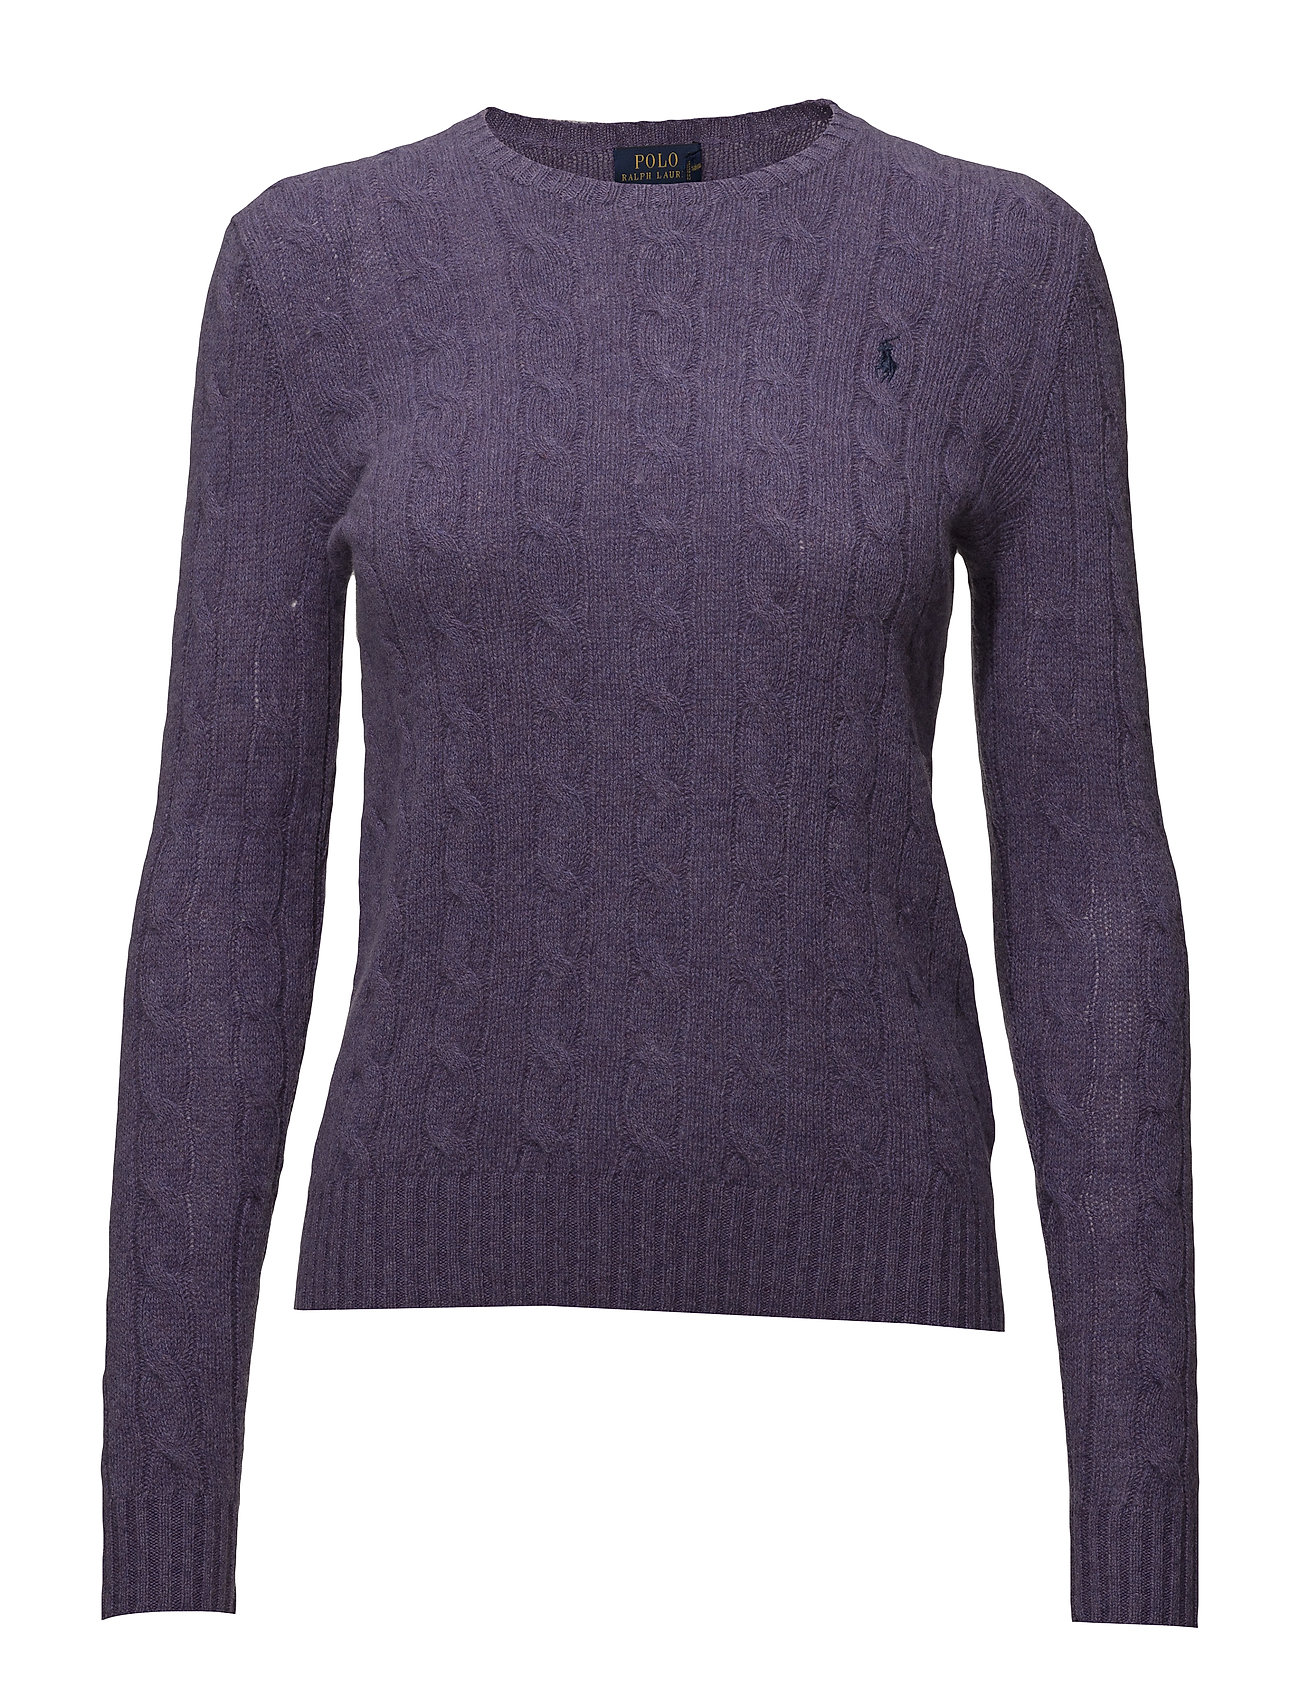 7736fba1d2925 Cable Wool-cashmere Sweater (Thistledown Heath) (906.75 kr) - Polo ...